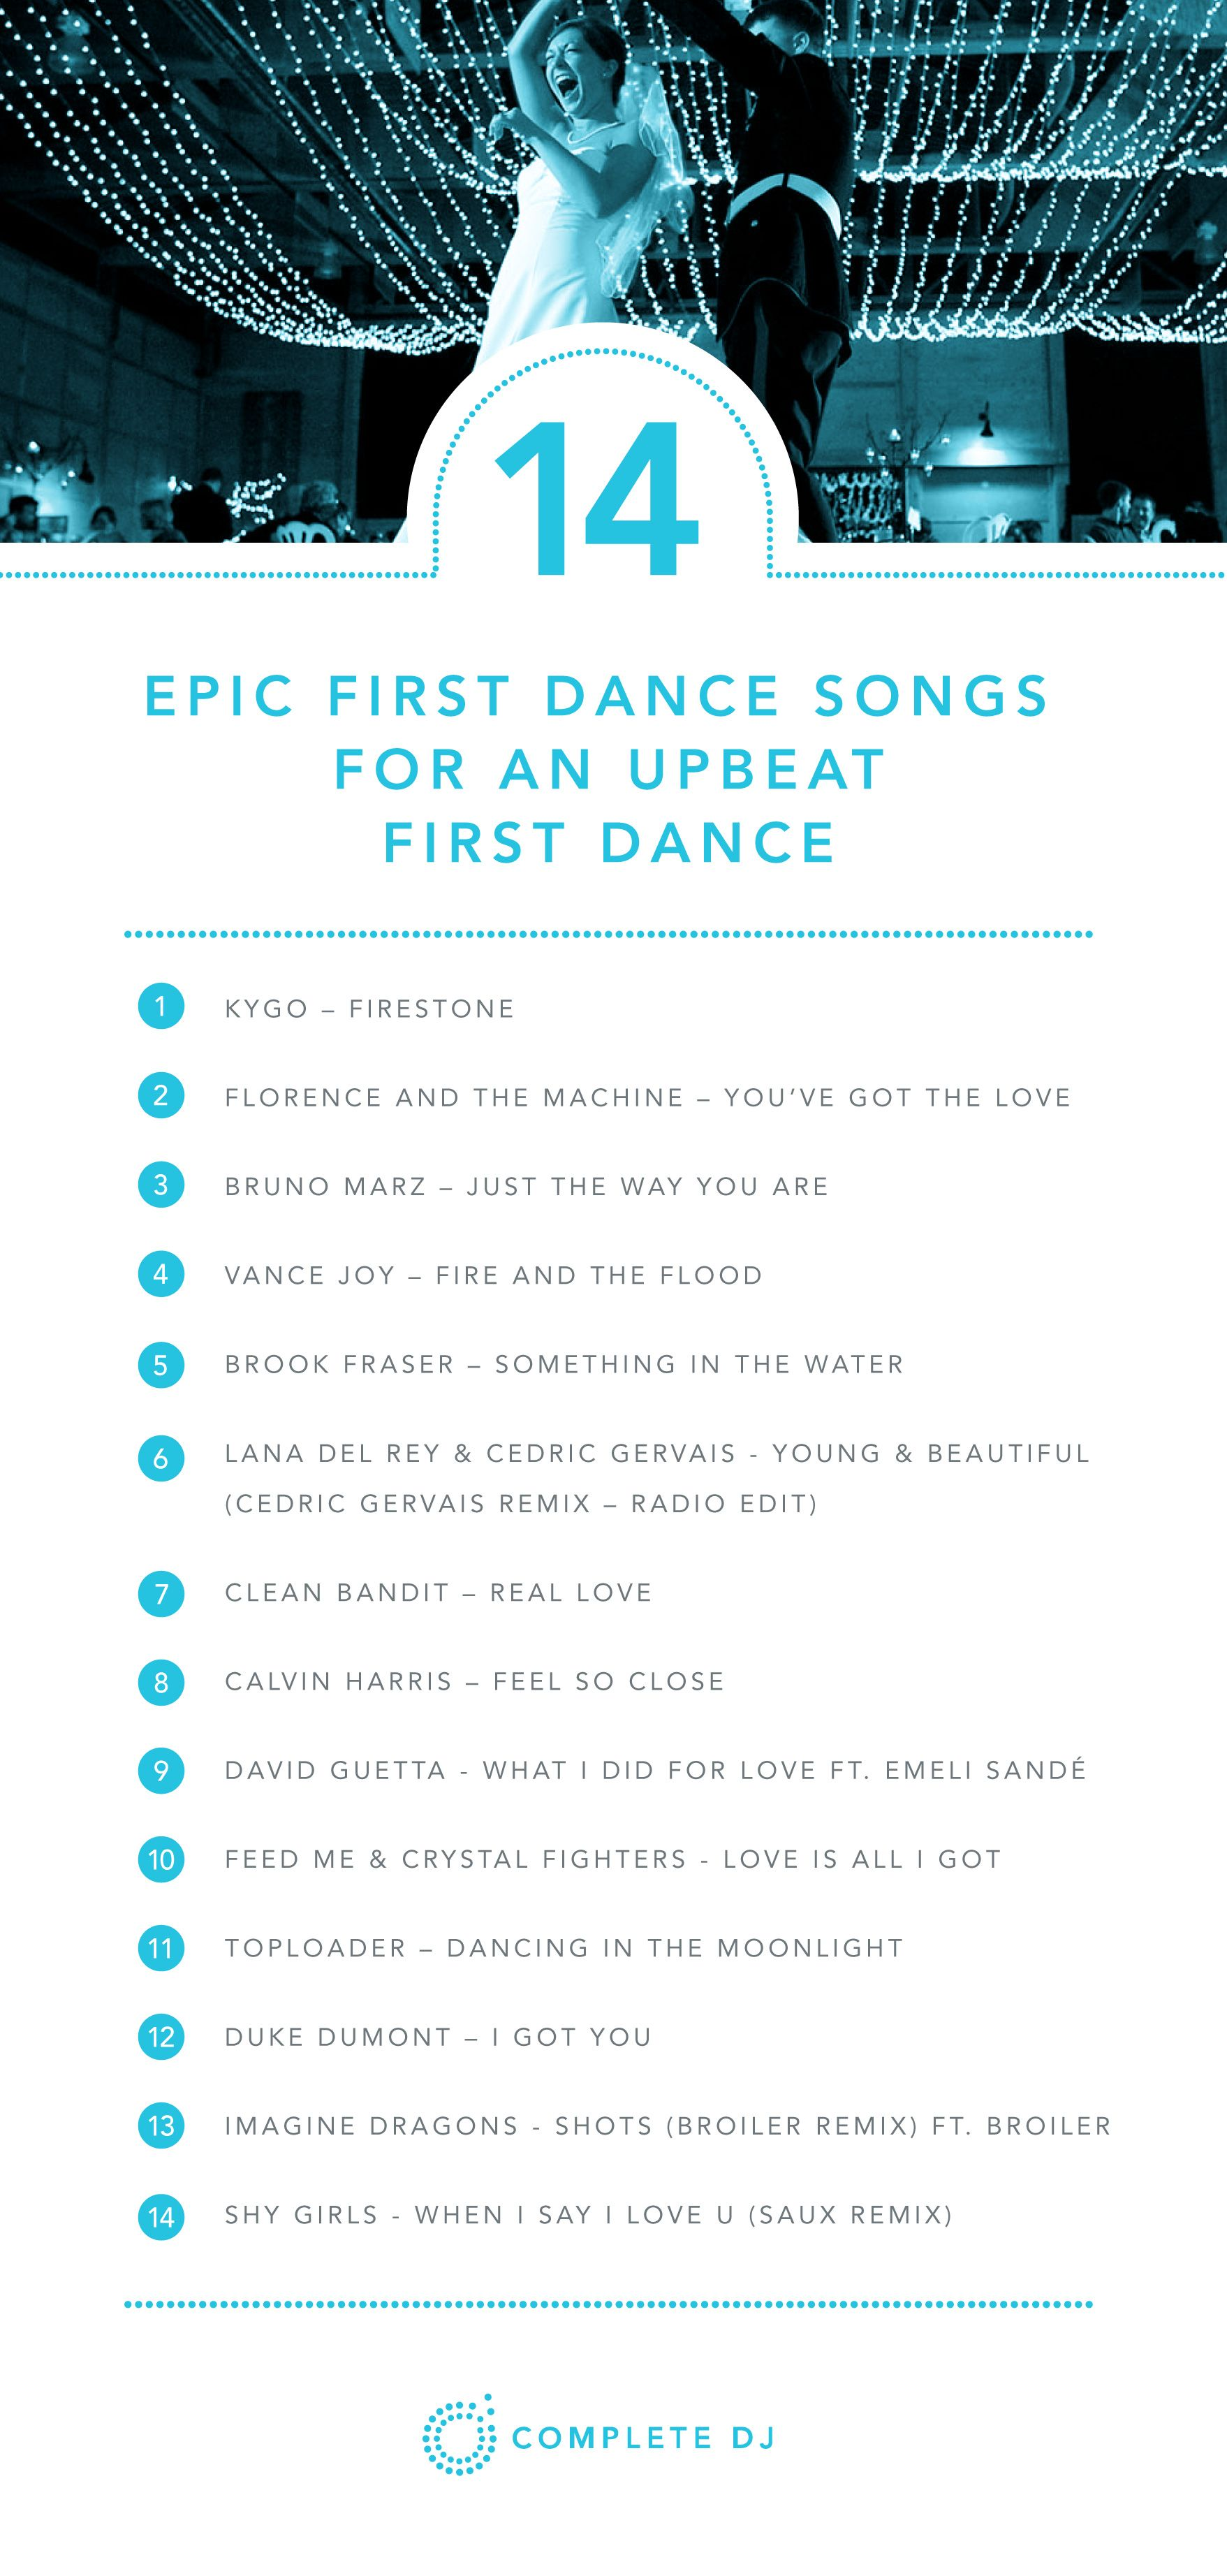 Great suggestions on upbeat wedding first dance songs, upbeat bridal ...